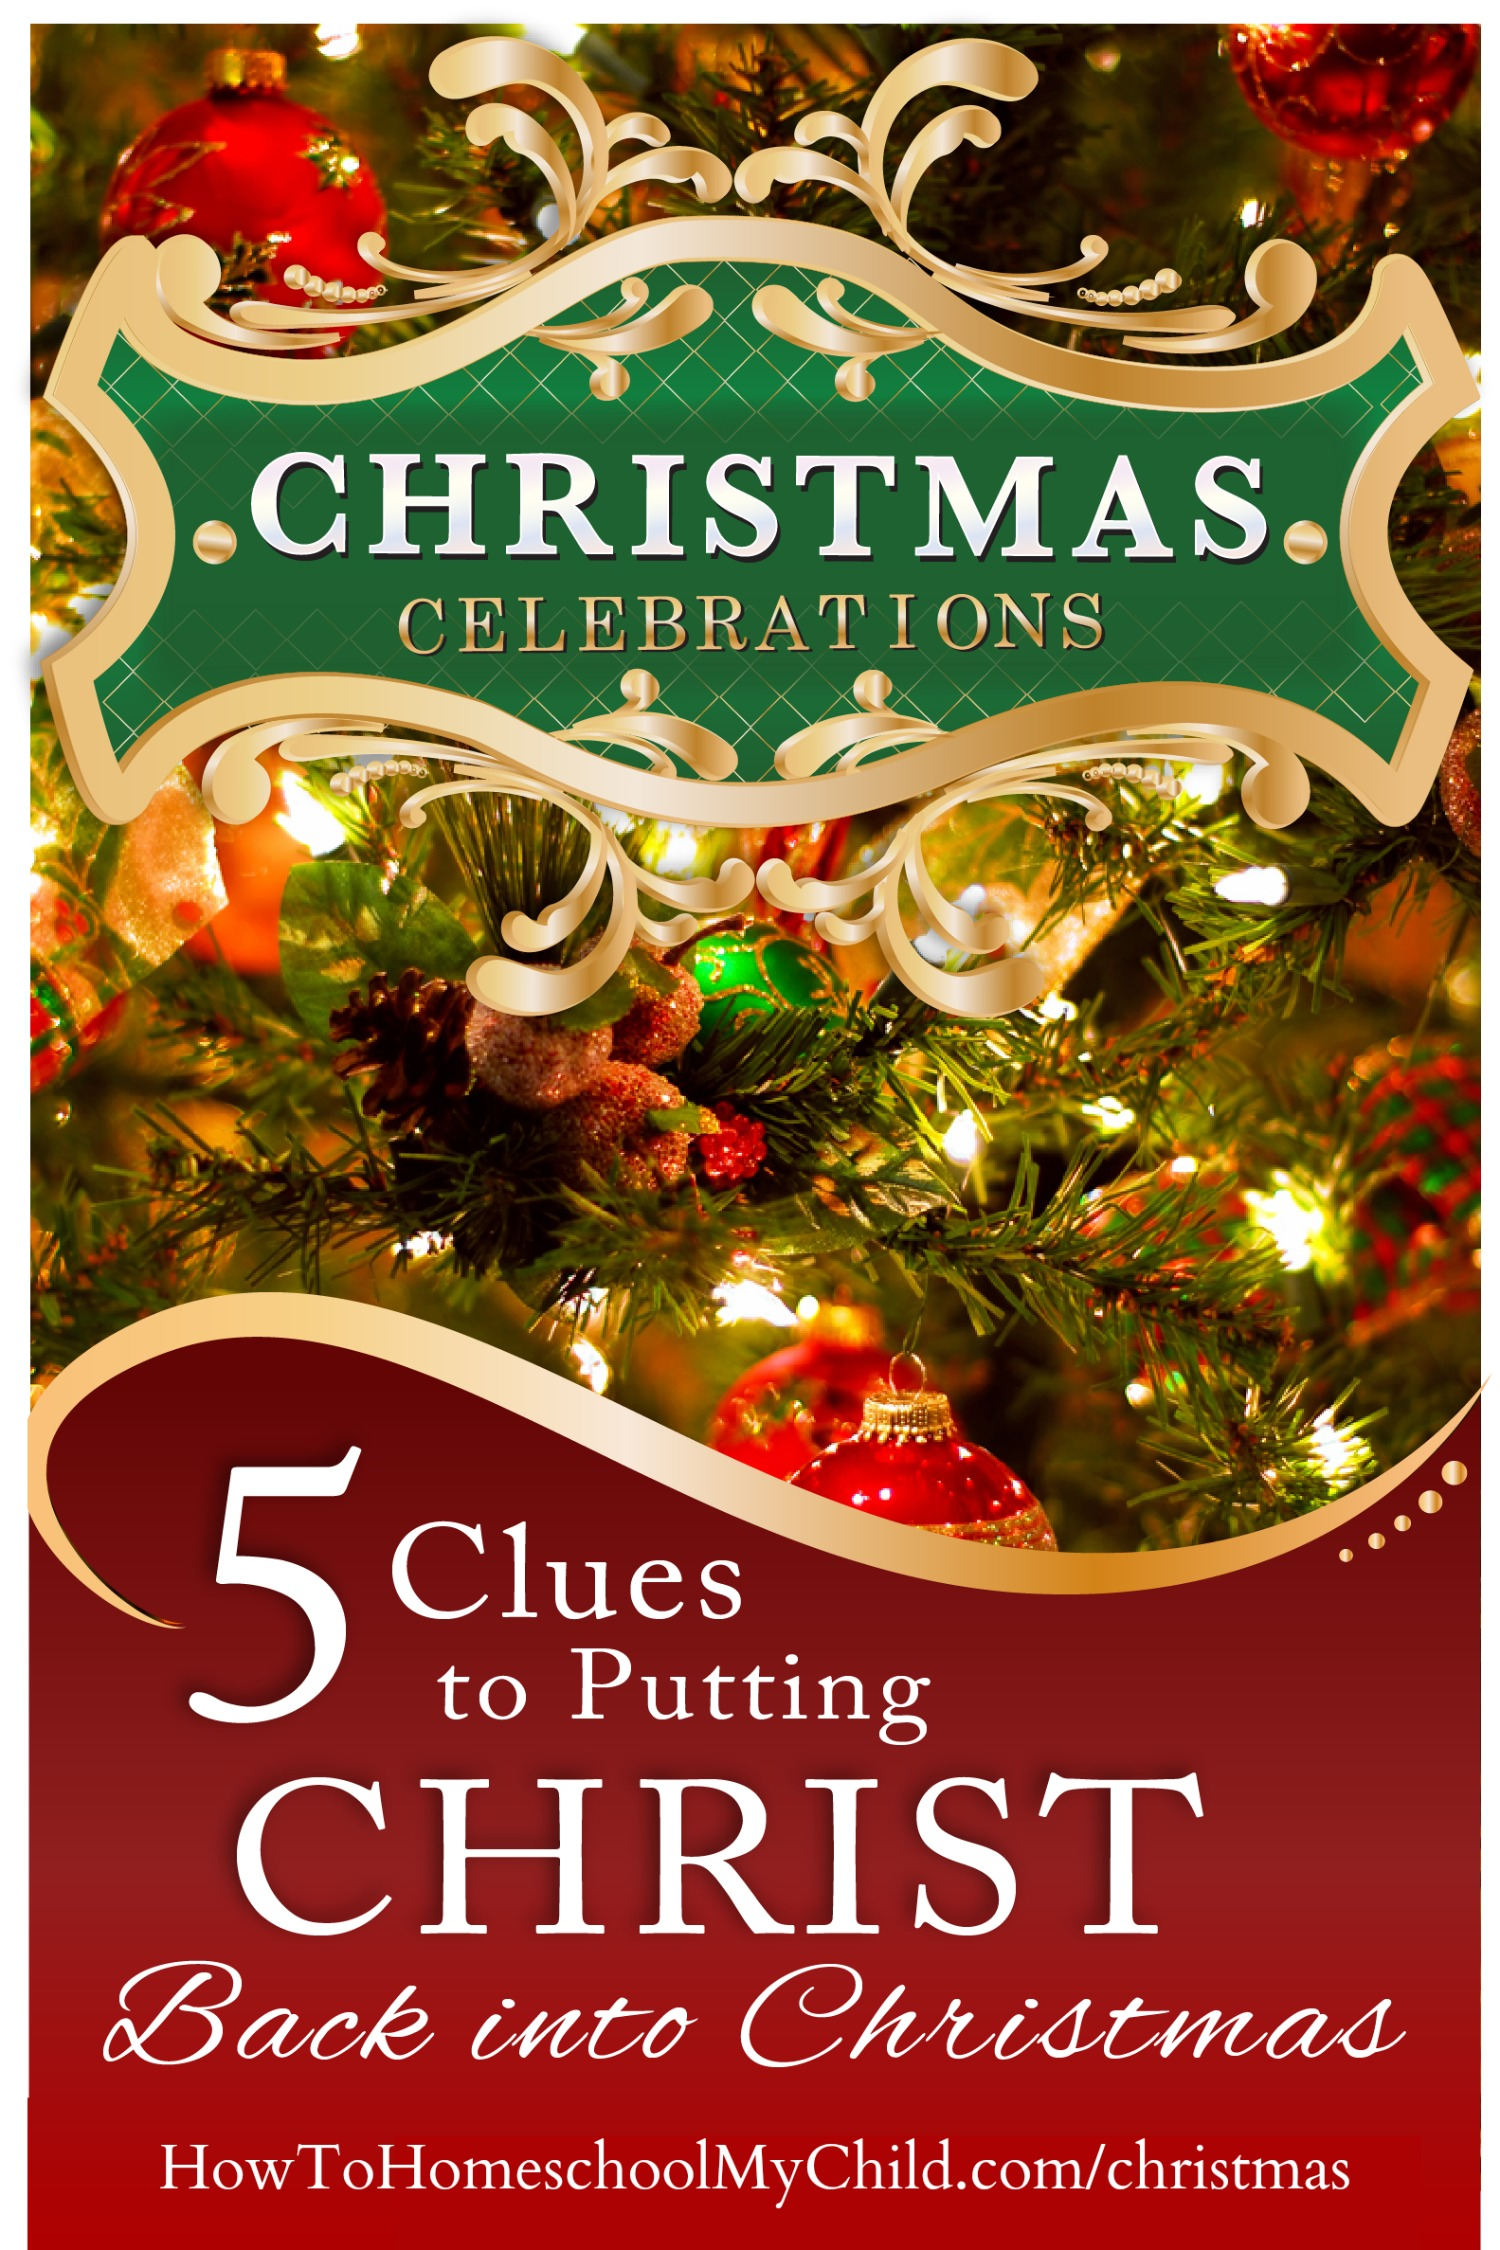 Discover how to put Christ back into Christmas ... Jesus is the reason for the season